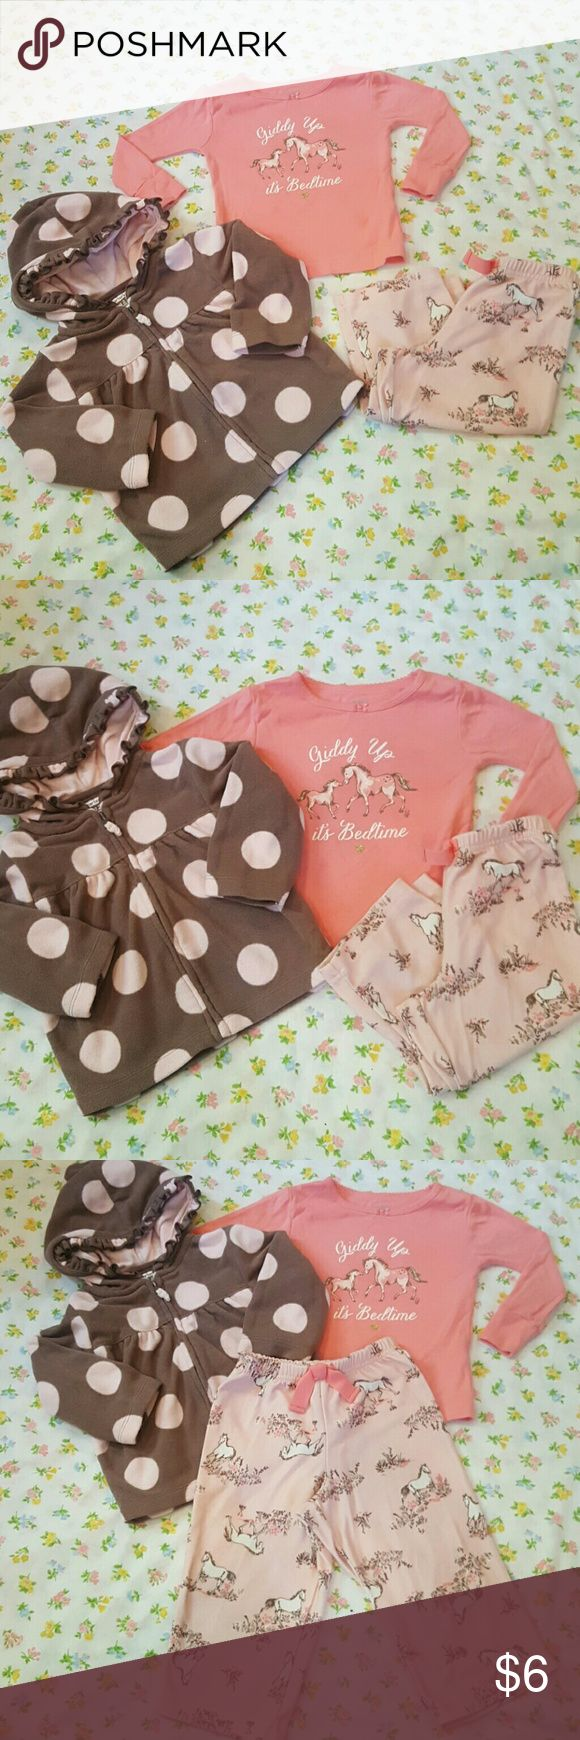 Carter's pony pajamas and polka dot hoodie Adorable soft and cozy baby girl pony pajamas by carter's size 18m but fits more like 12m comes with soft cozy adorable brown and pink polka dot Carter's zip up hoodie size 12m . Used but still very wearable condition. Carter's Pajamas Pajama Sets